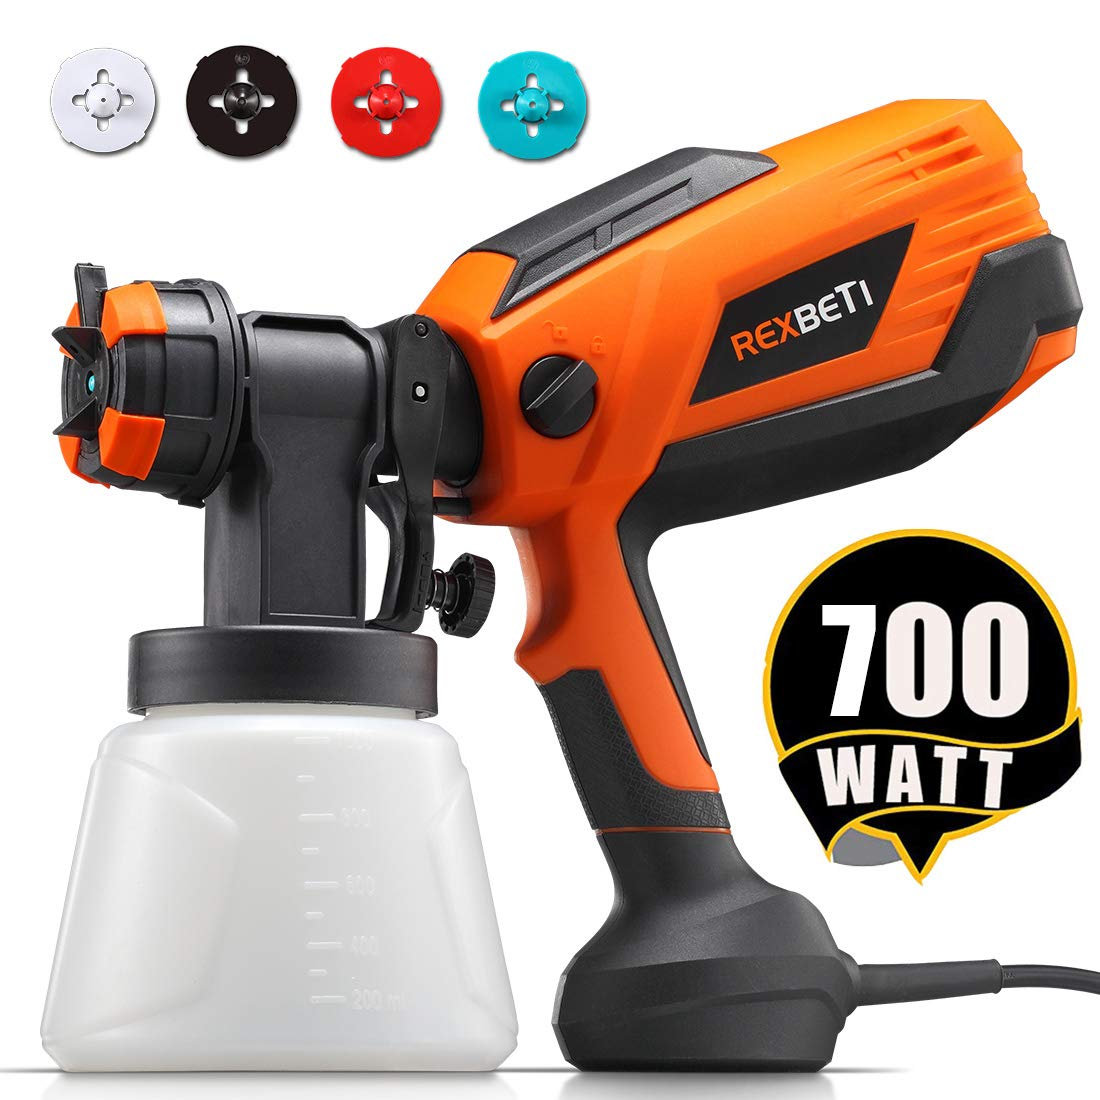 REXBETI 700 Watt High Power Paint Sprayer, 1000ml/min HVLP Home Electric Spray Gun with 1000ml Container, 4 Nozzle Sizes, Easy Spraying and Cleaning, Perfect for Spraying Work by REXBETI